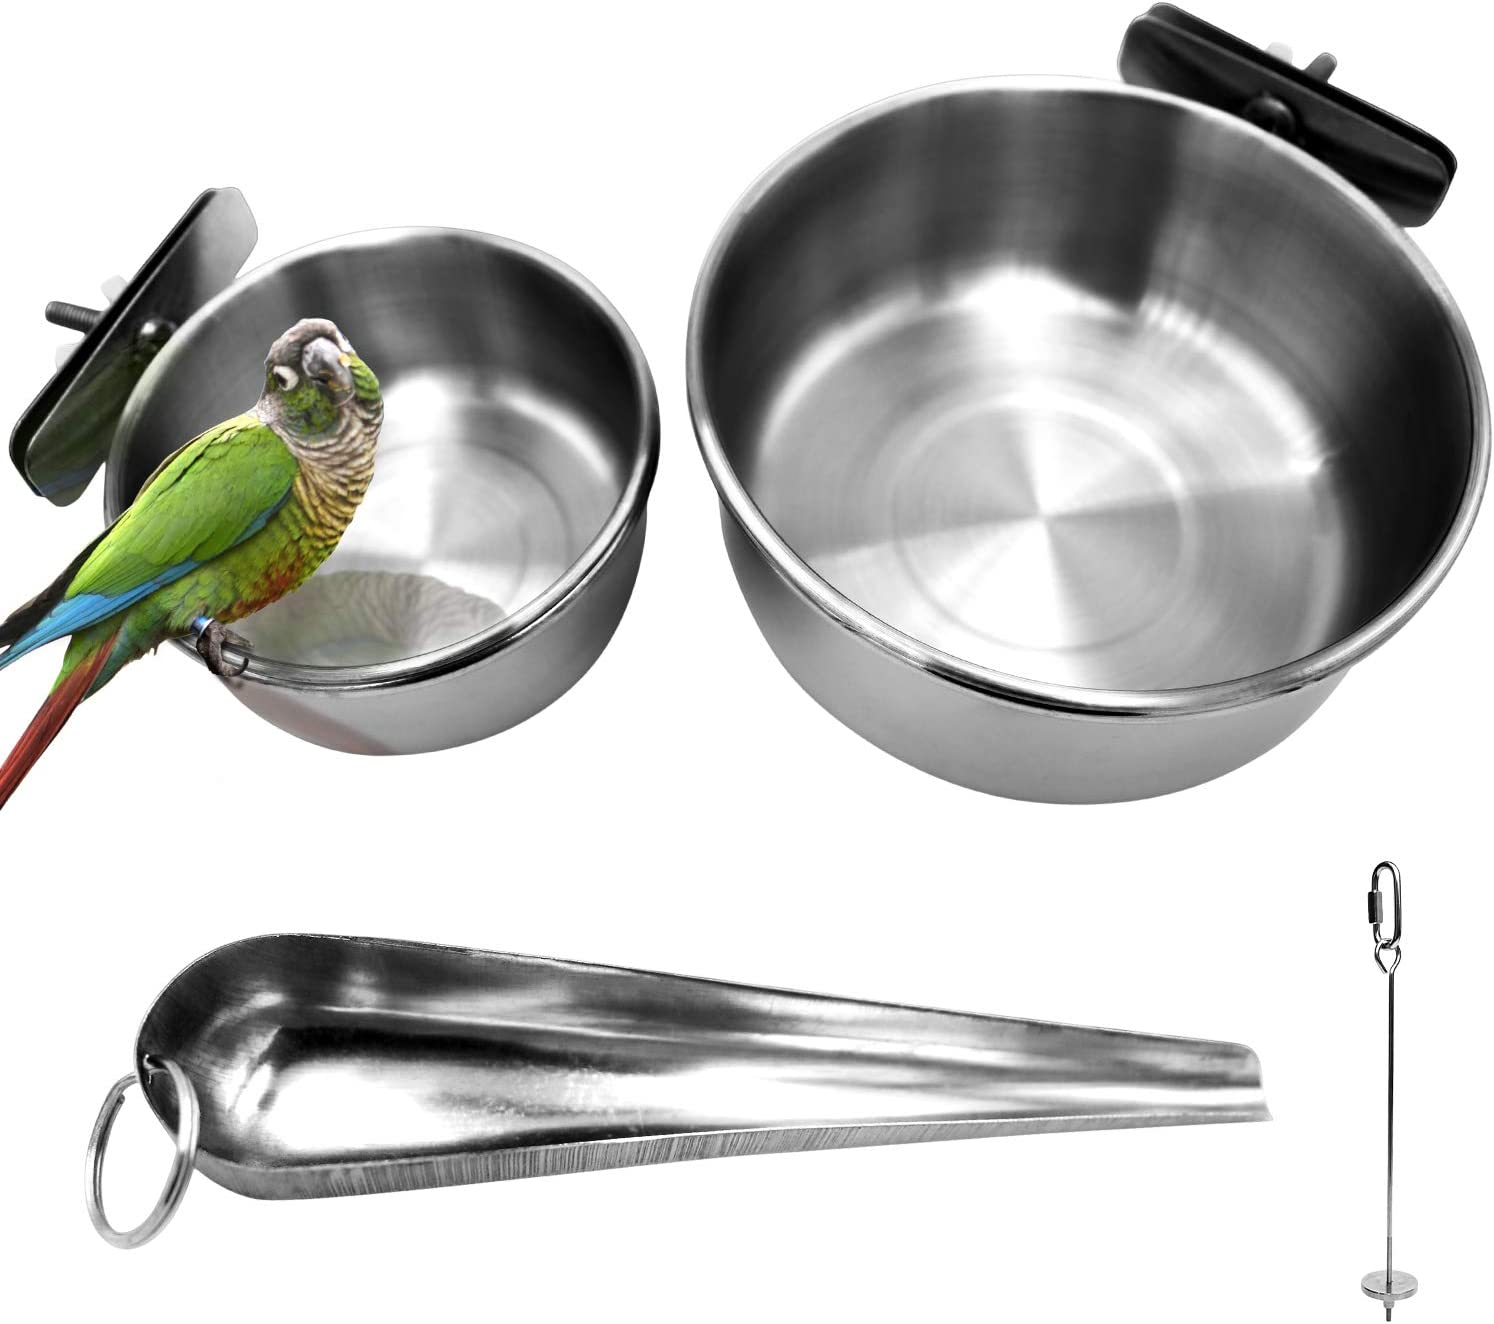 2 Pack Birds Food Dish Parrot Stainless Steel Feeding Cups Bird Feeders Water Cage Bowls with Clamp Holder and 1 Pcs Bird Stand Toy for Parakeet Conure Cockatiels Lovebird Budgie Chinchilla